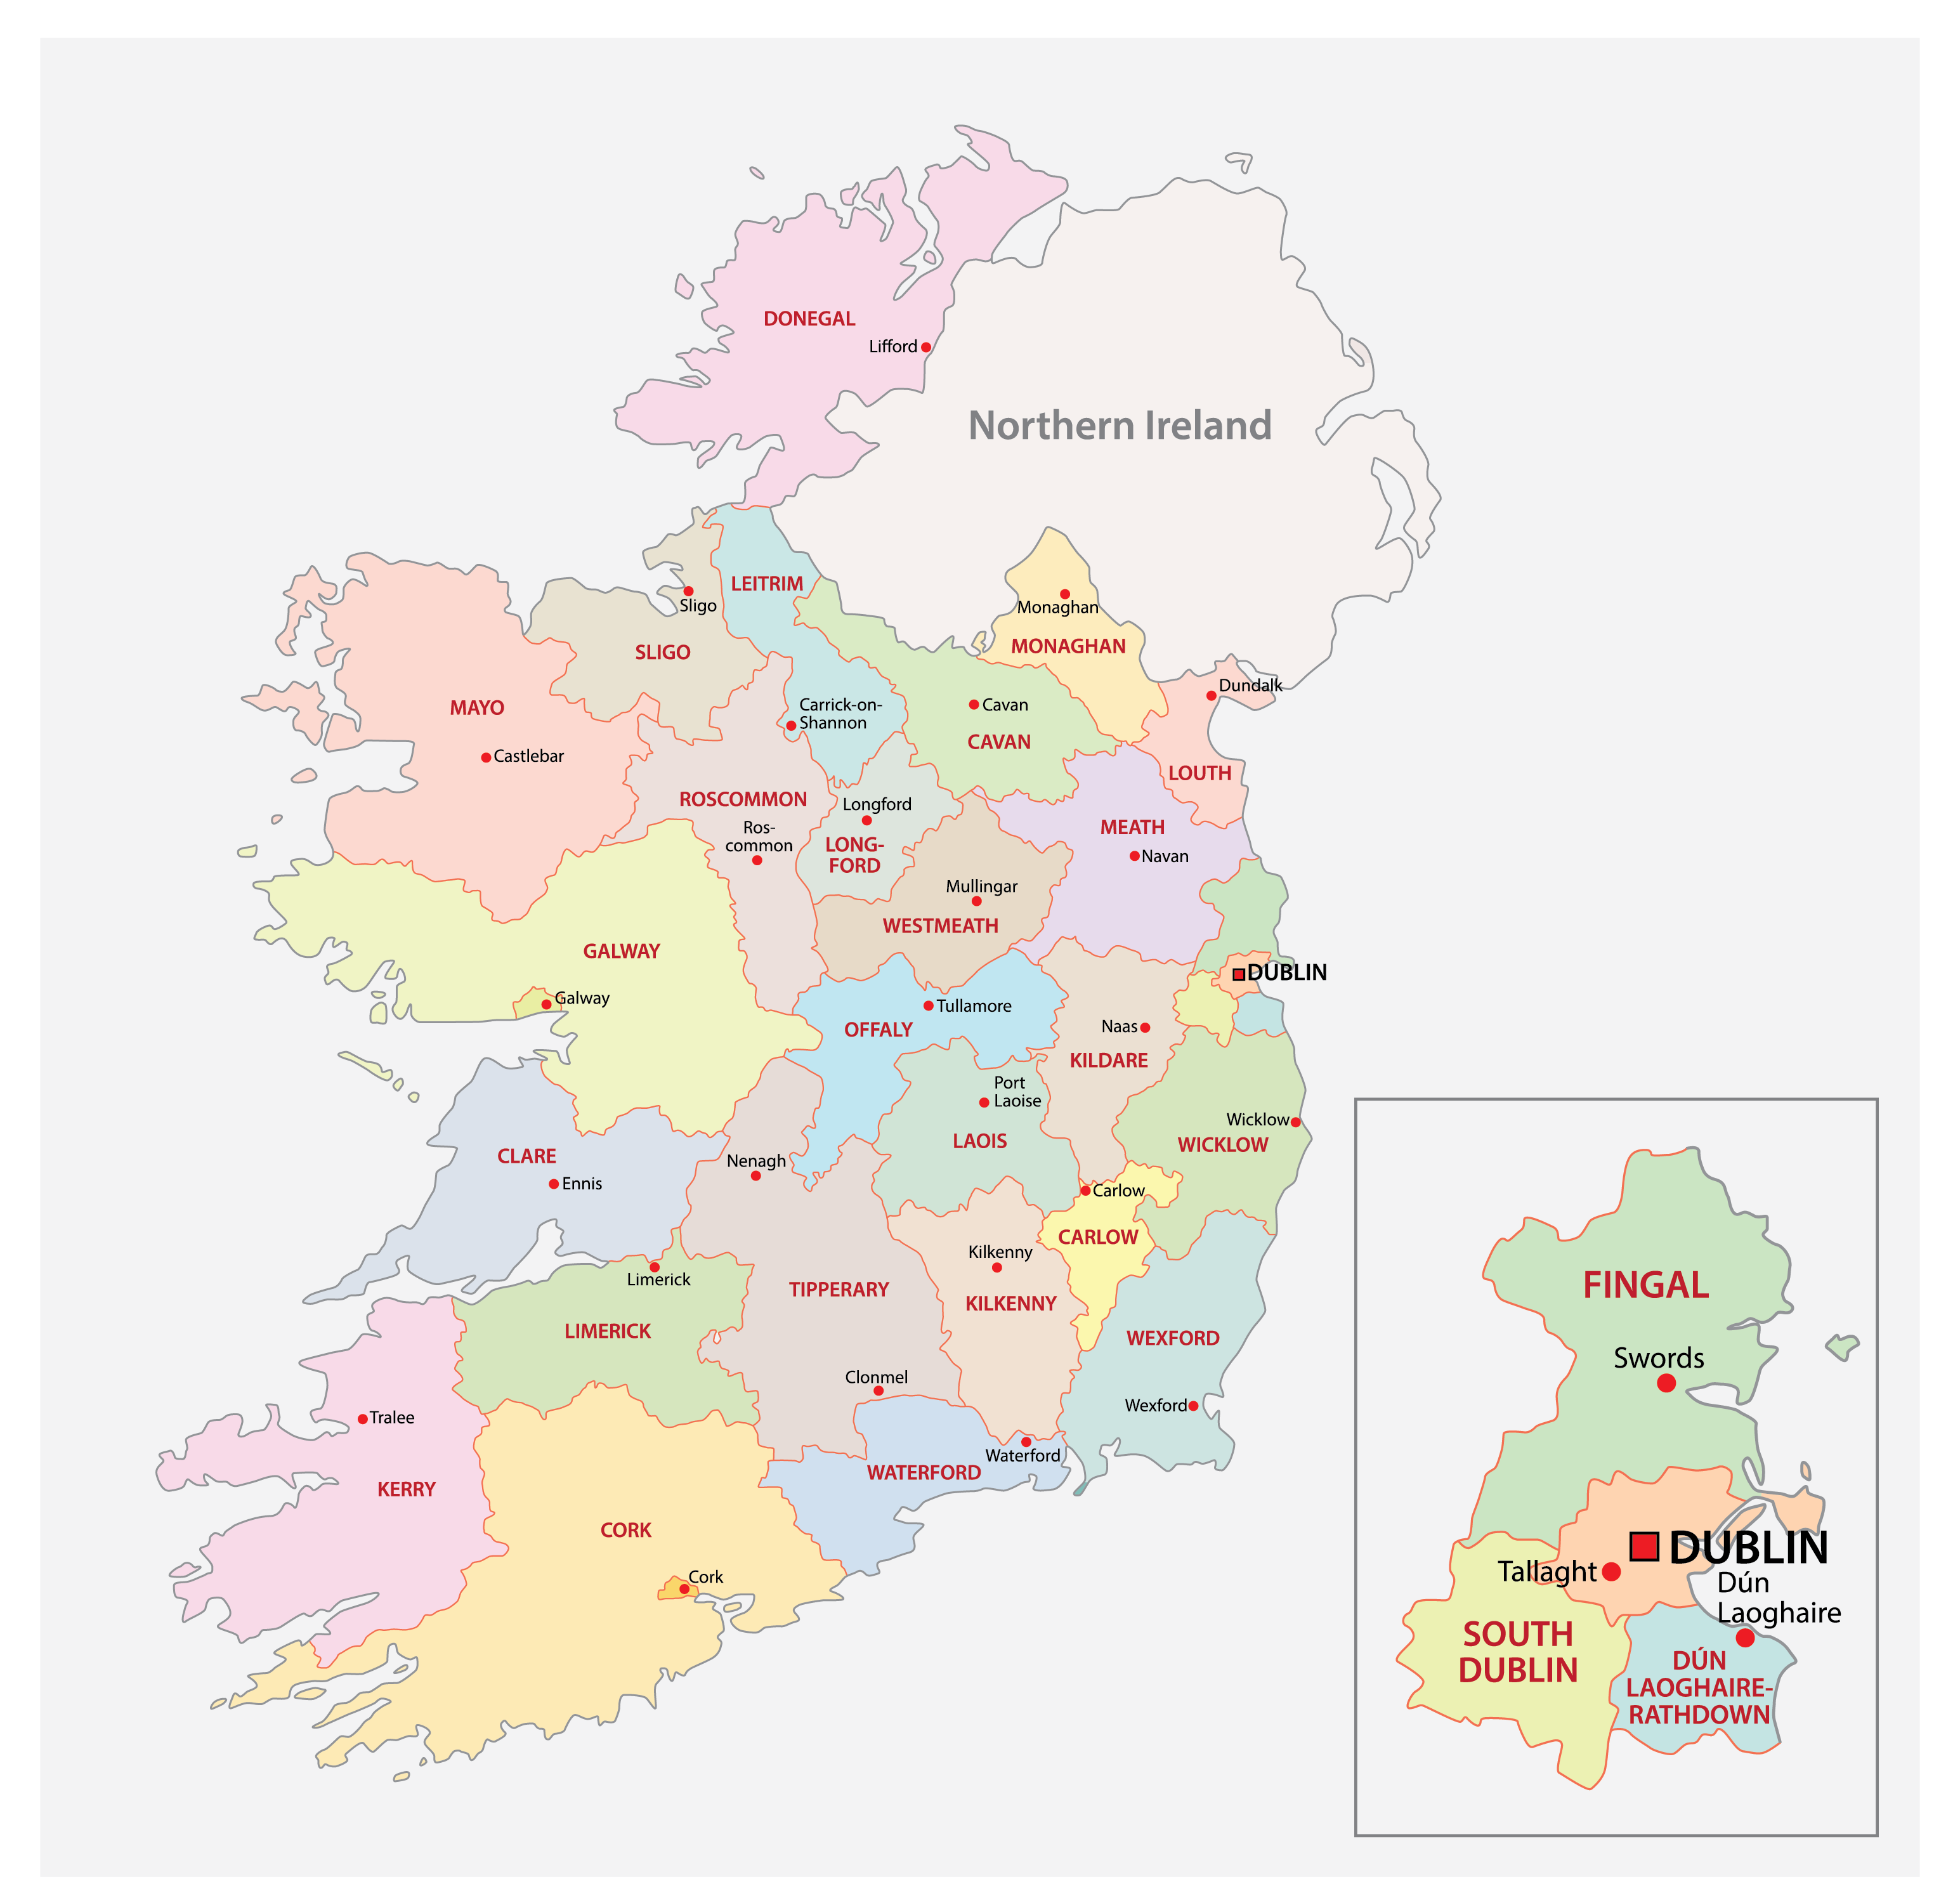 Political Map of Republic of Ireland showing its 31 administrative areas and the capital city of Dublin